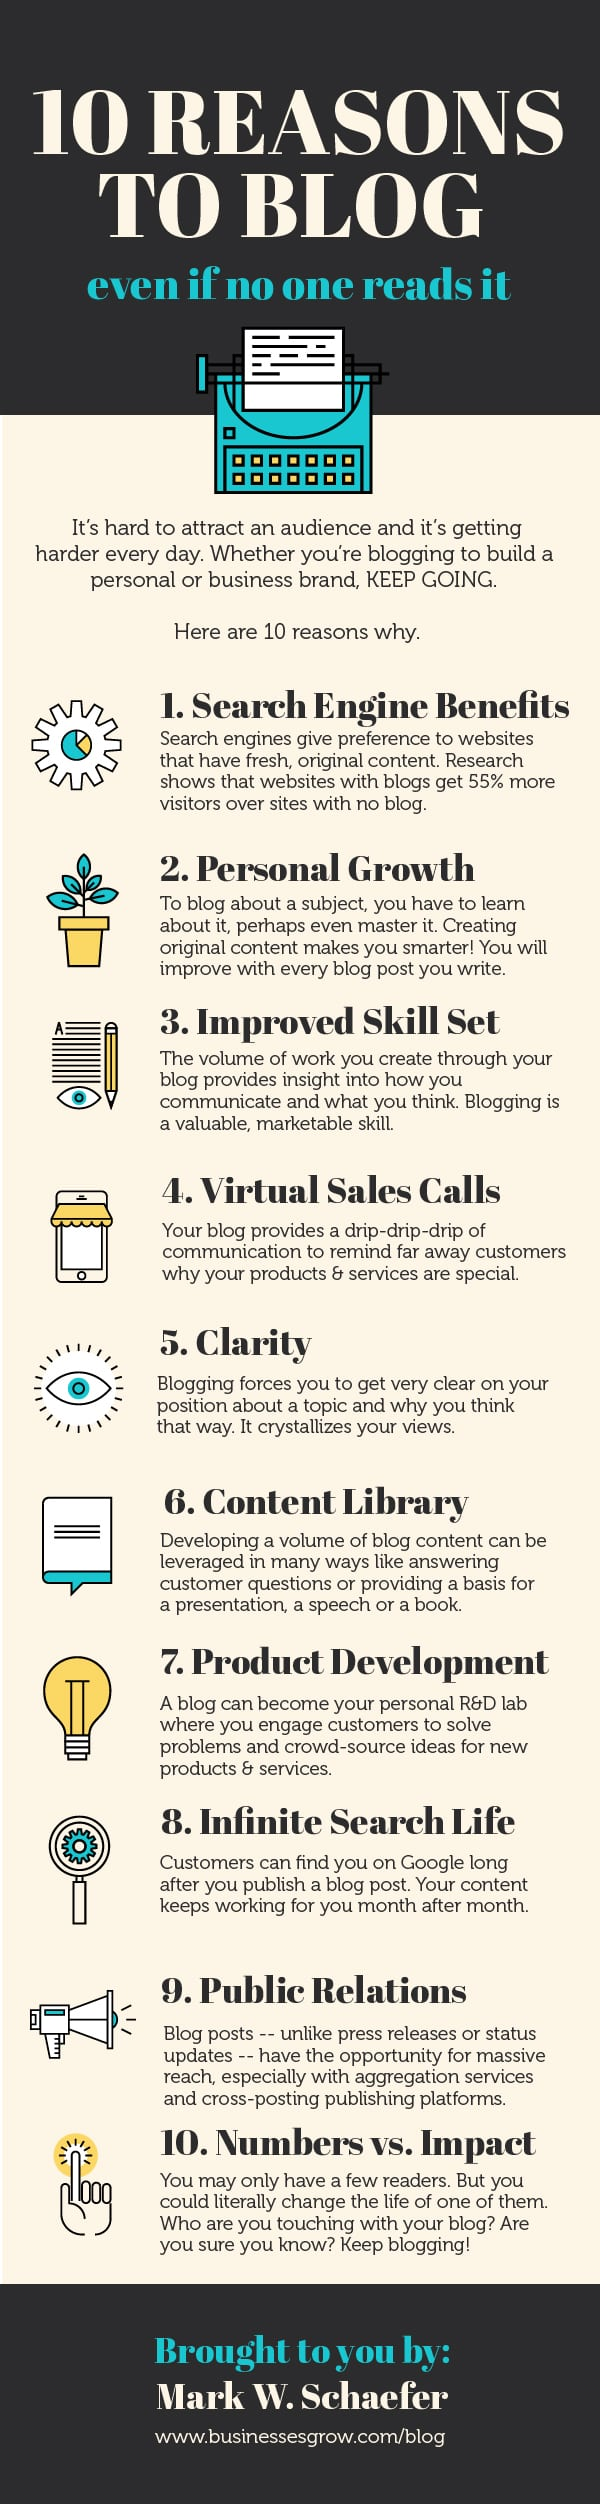 10 Benefits of Blogging for Business and Marketing [Infographic] | Social Media Today